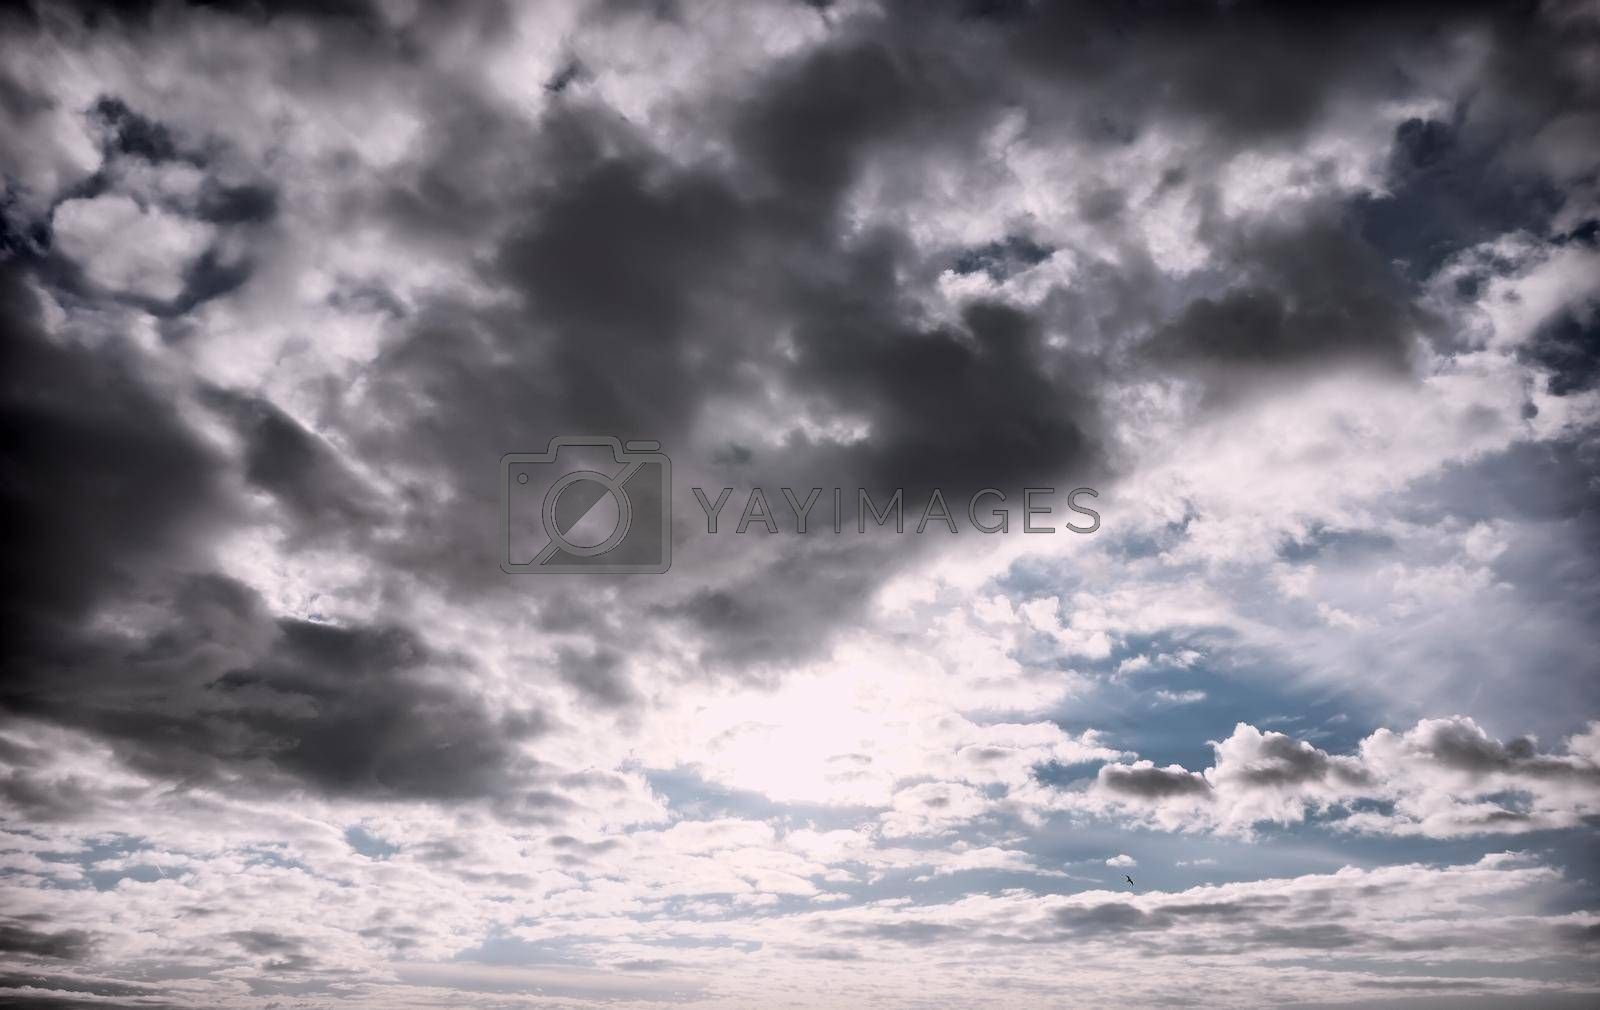 Background image of the sky with dark storm clouds